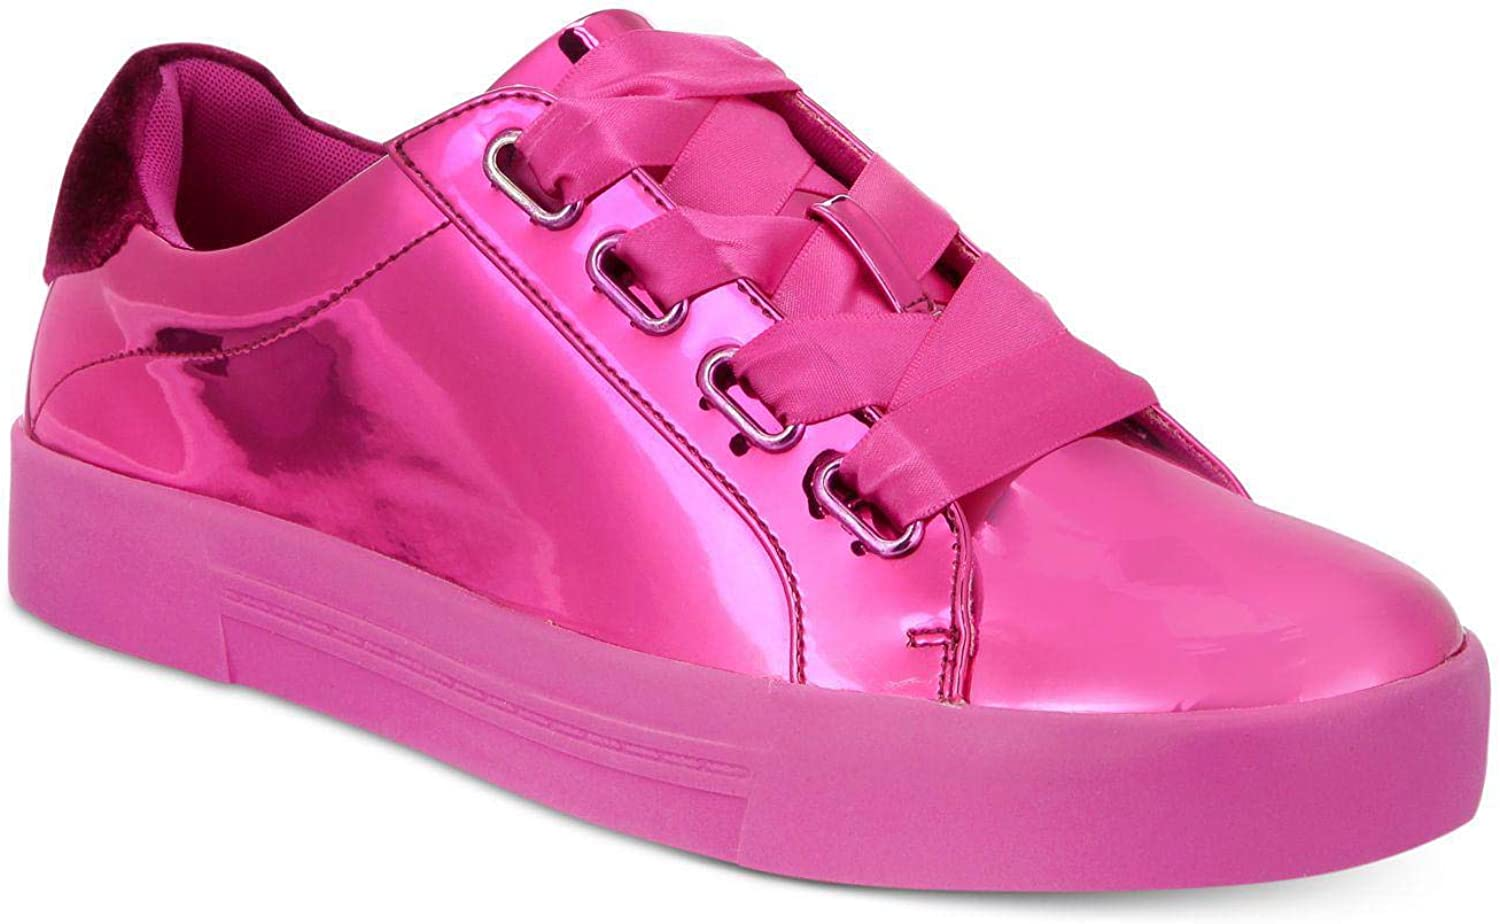 Call It Spring Womens Legeasien Fabric Low Top Lace Up Fashion Sneakers